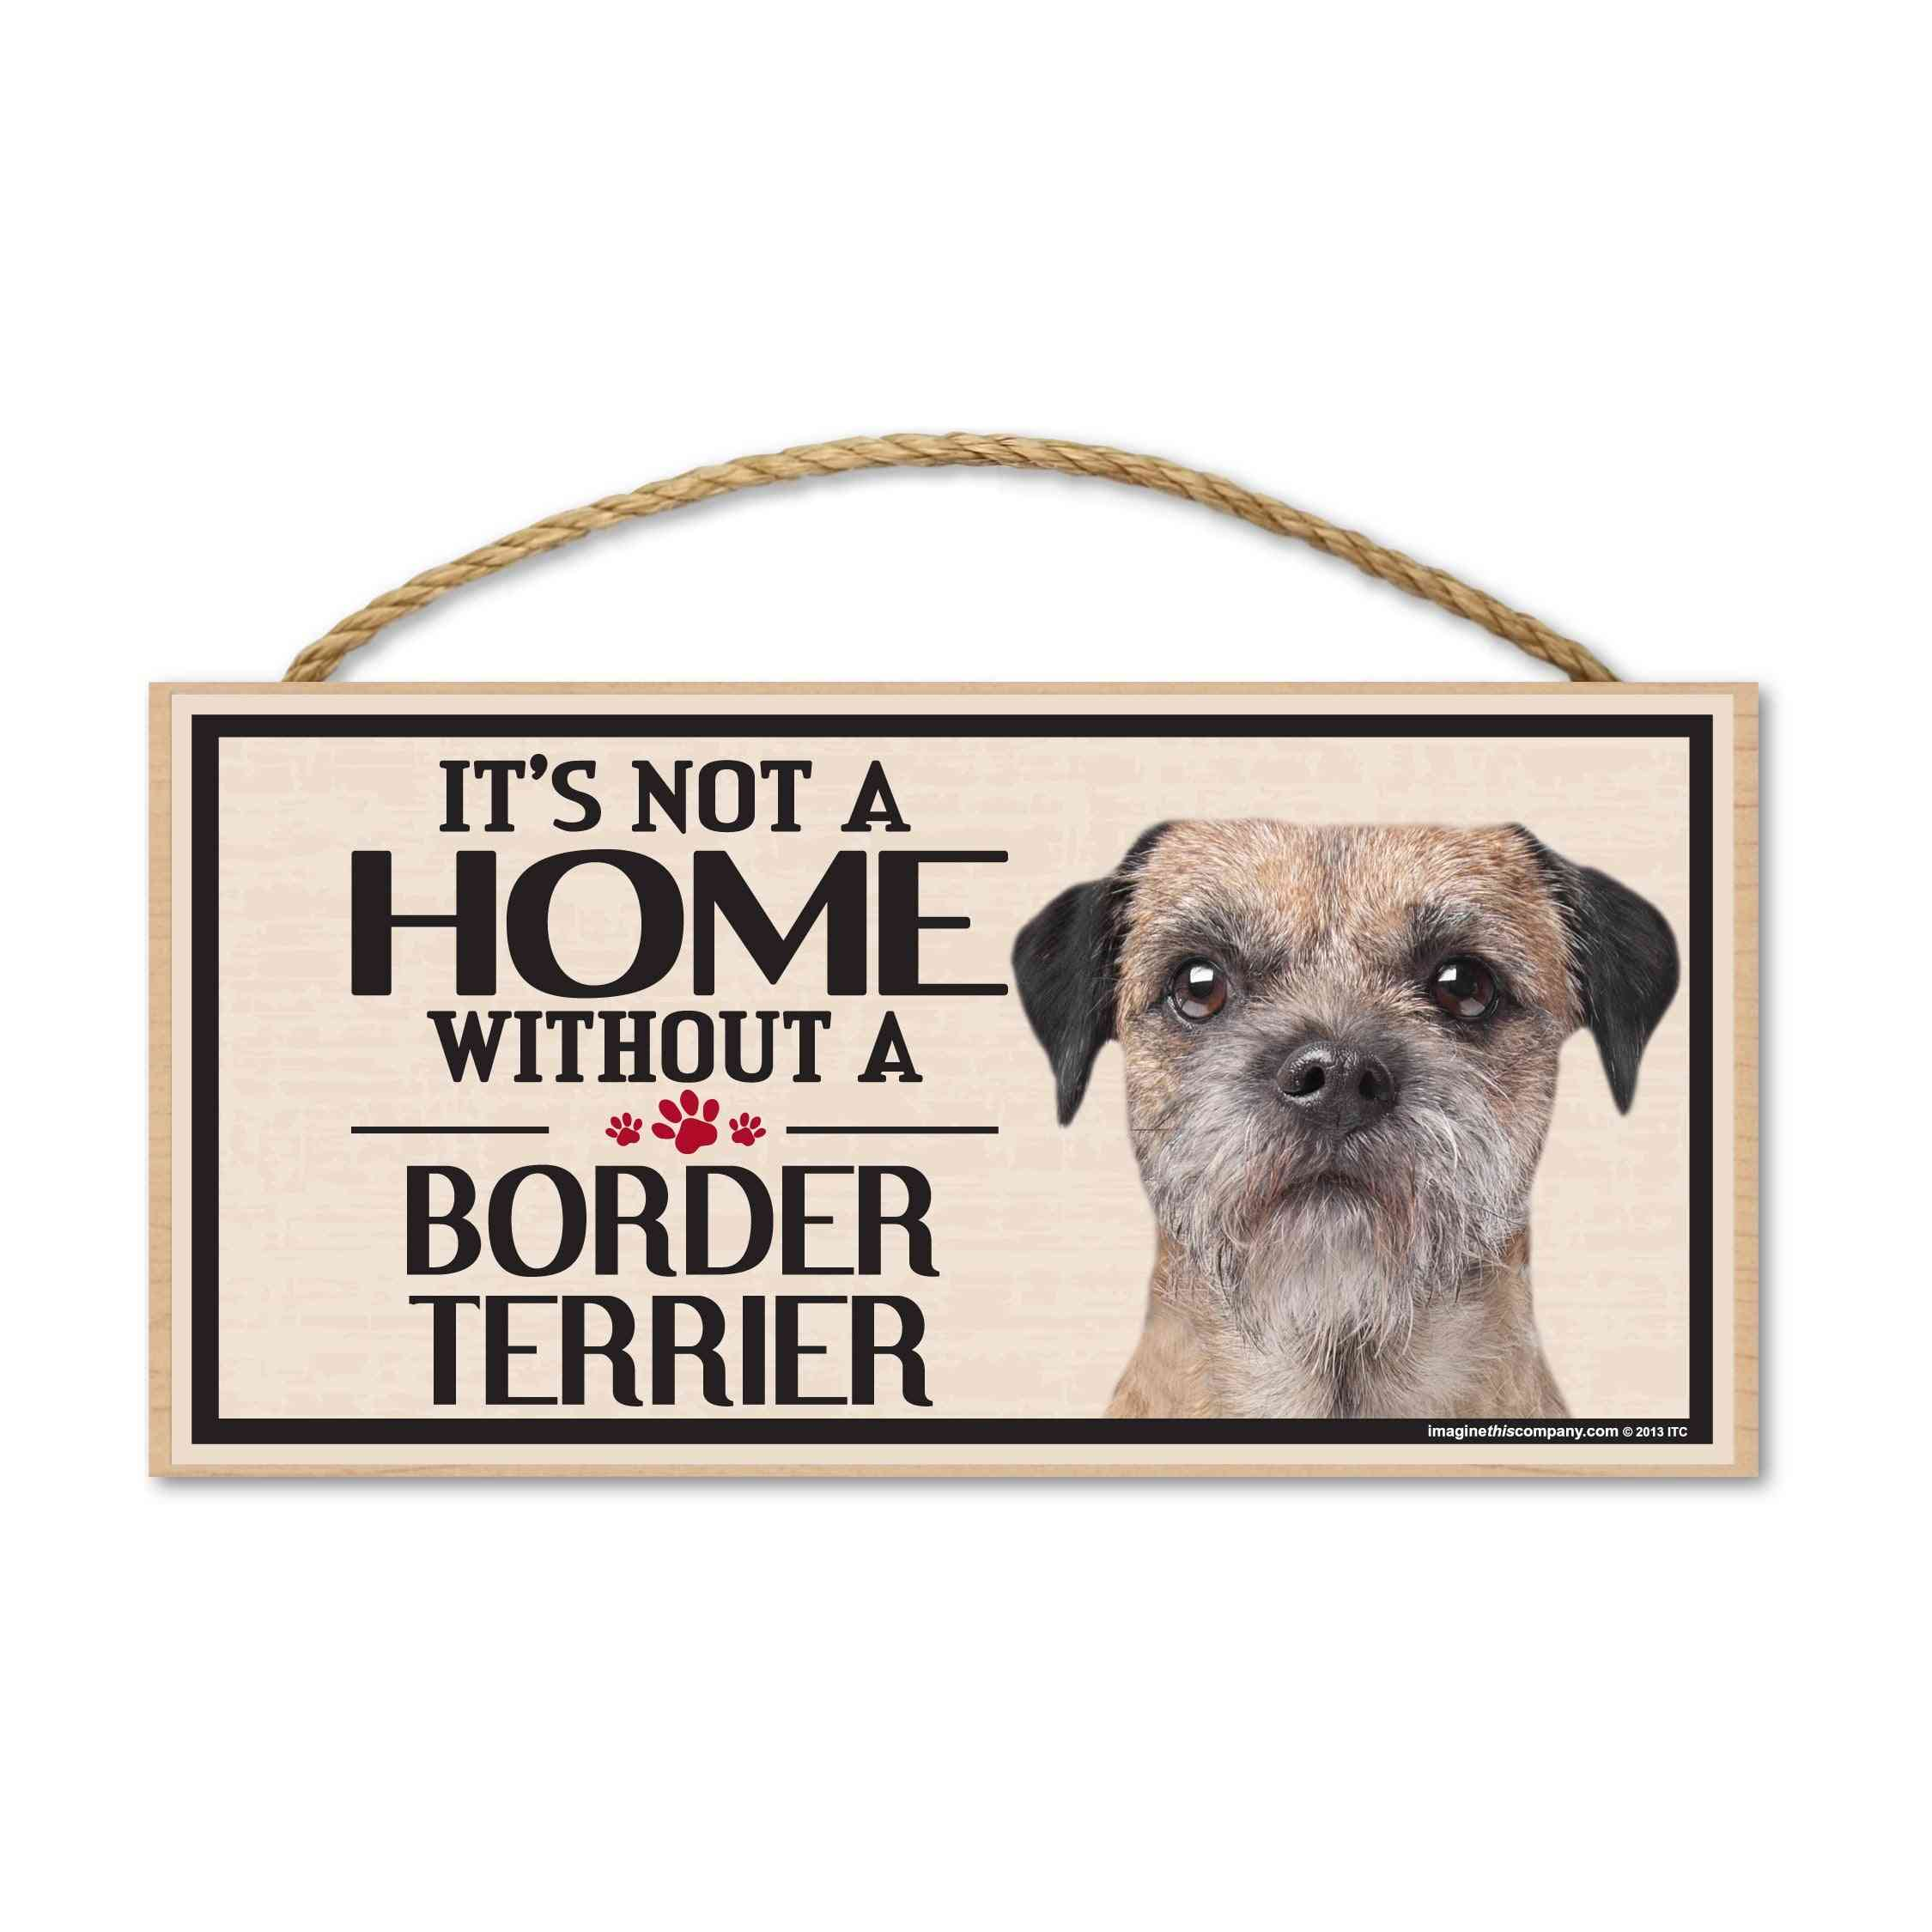 Sign, Wood, It's Not A Home Without A Border Terrier, 10